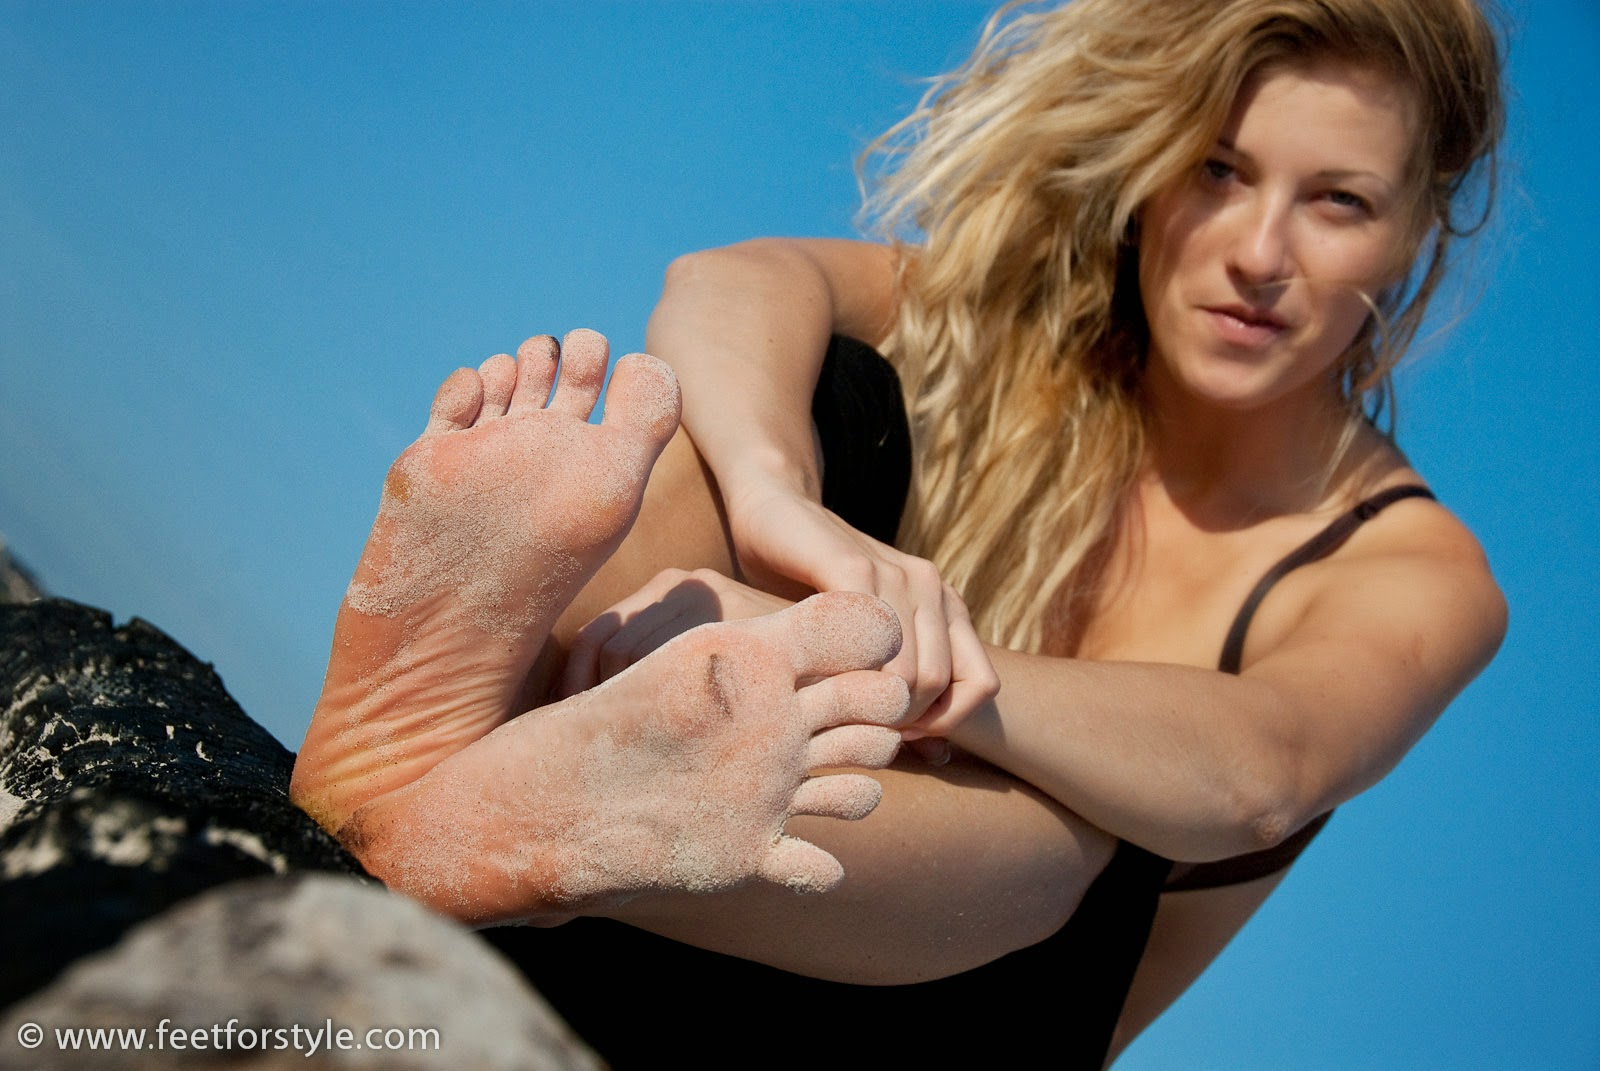 Foot fetish on the beach